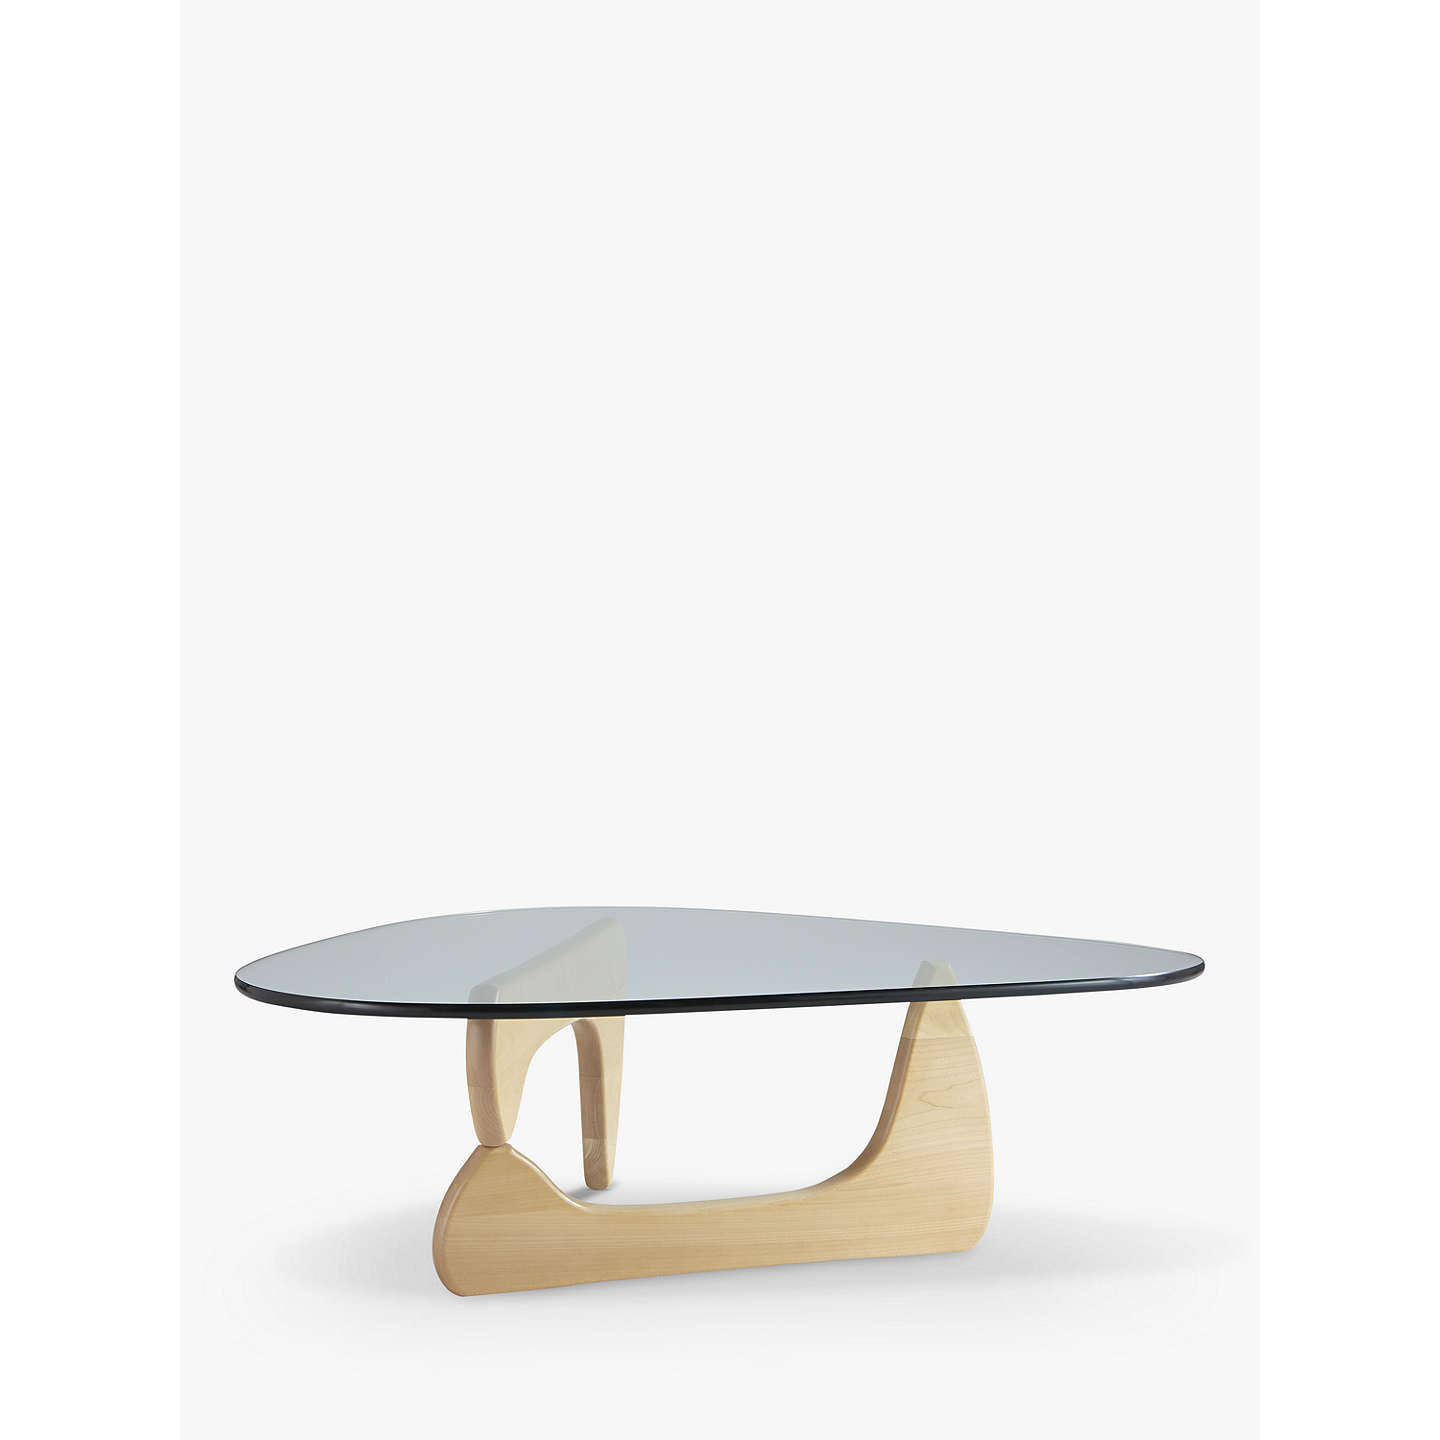 vitra noguchi coffee table maple wood at john lewis. Black Bedroom Furniture Sets. Home Design Ideas